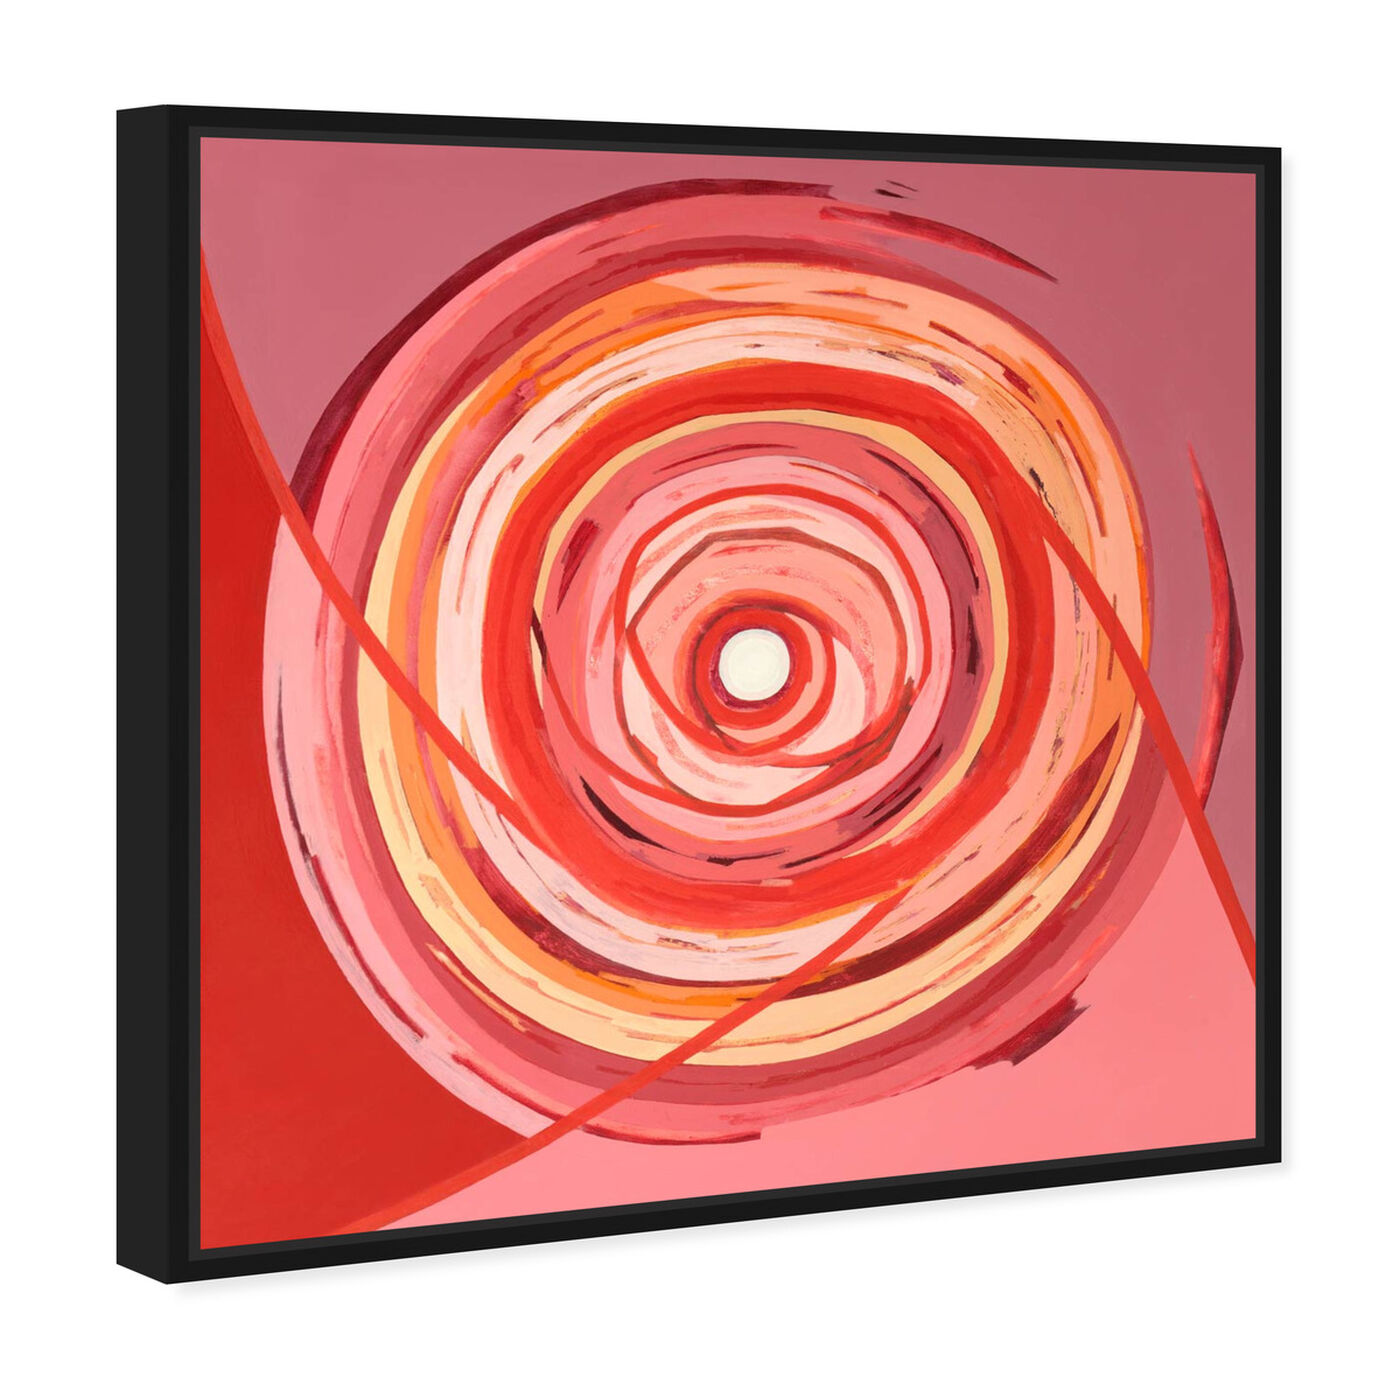 Angled view of Sai - Pictis Spiralis Rouge 1NM1759 featuring abstract and geometric art.